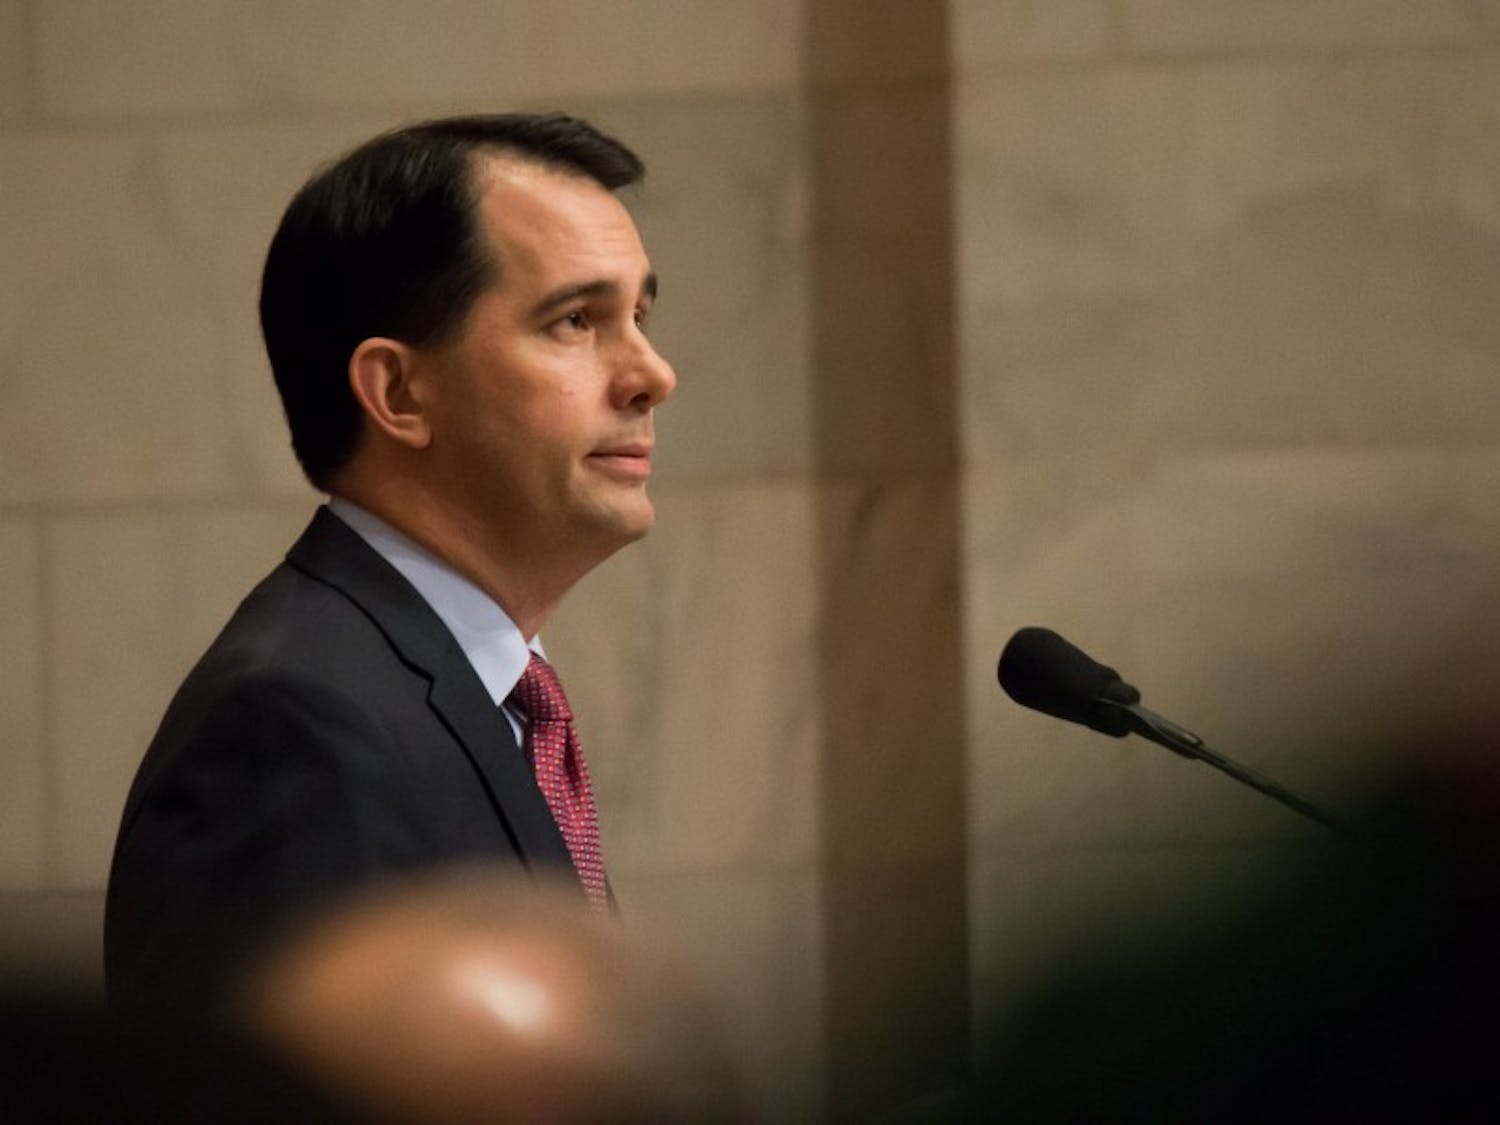 Gov. Scott Walker said he would not approve raising the gas tax in an effort to fix roads, despite opposition from some legislative Republicans.